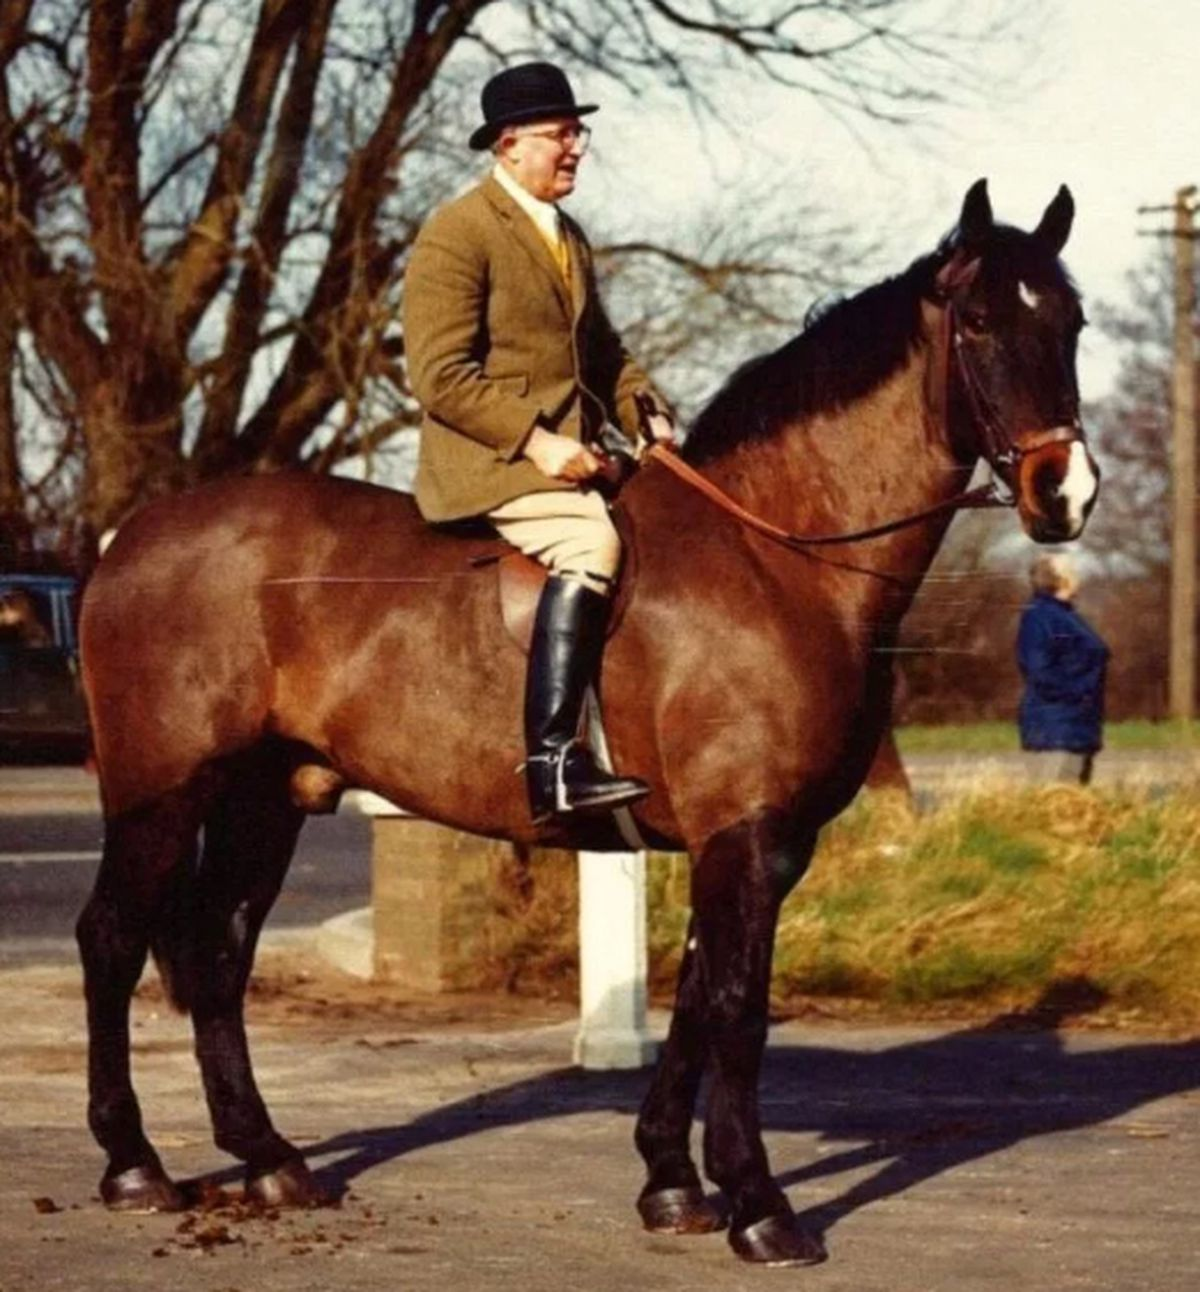 Lieutenant Colonel Monro was secretary of South Shropshire Hunt from 1969 to 1979